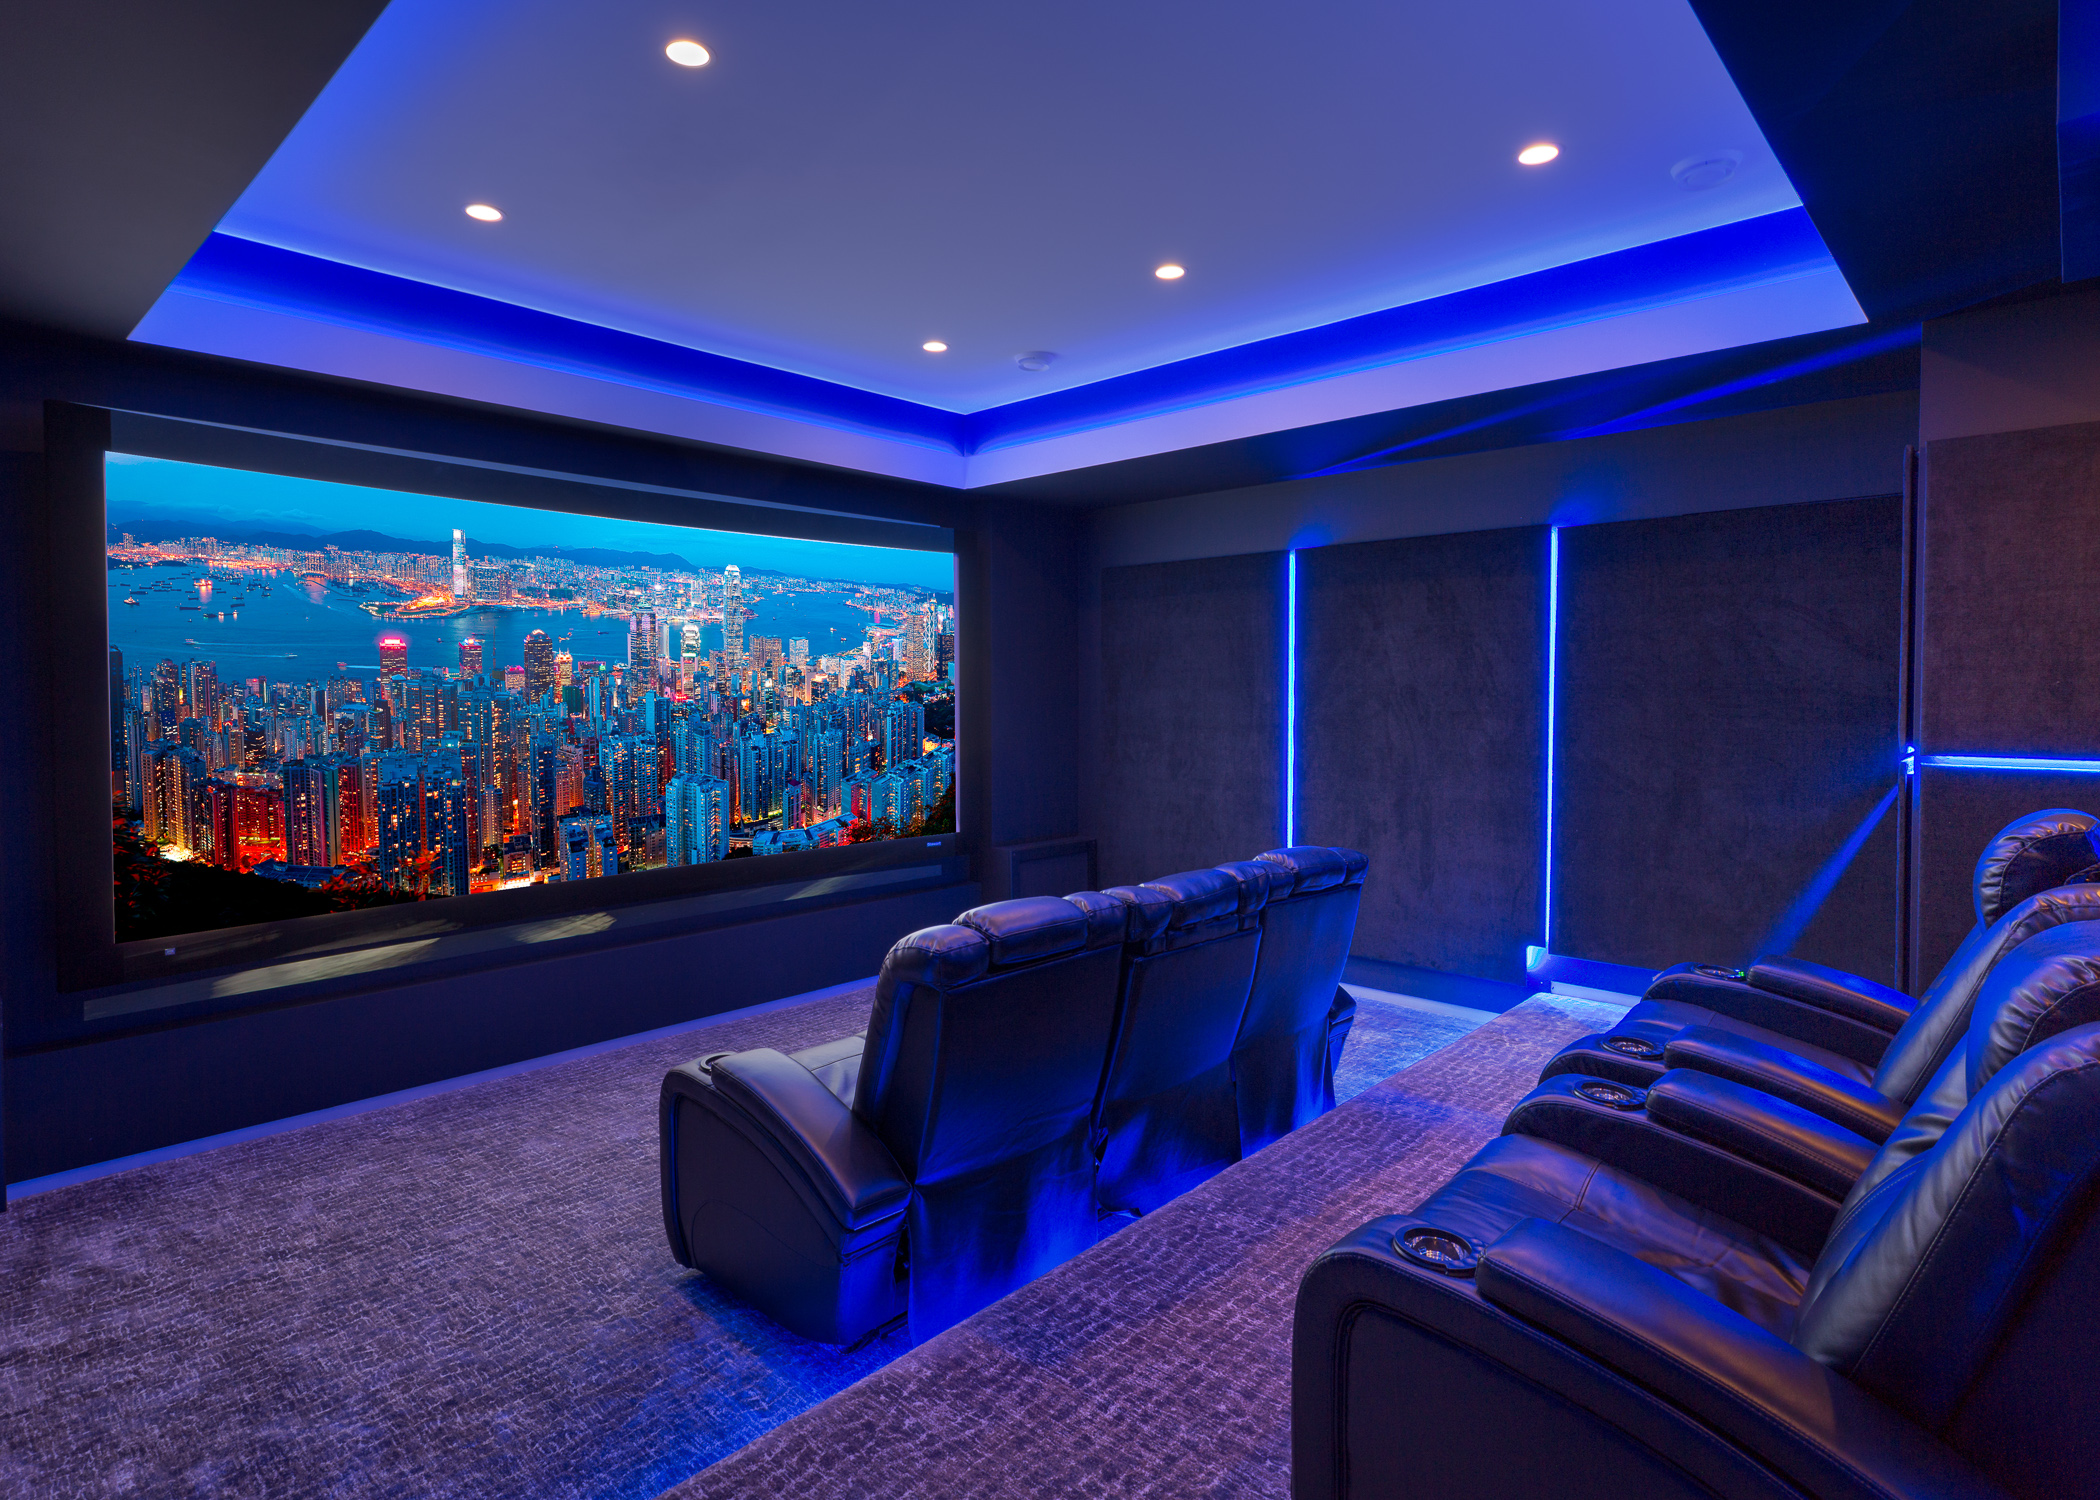 Executive home private theatre room highlighted with blue lighting